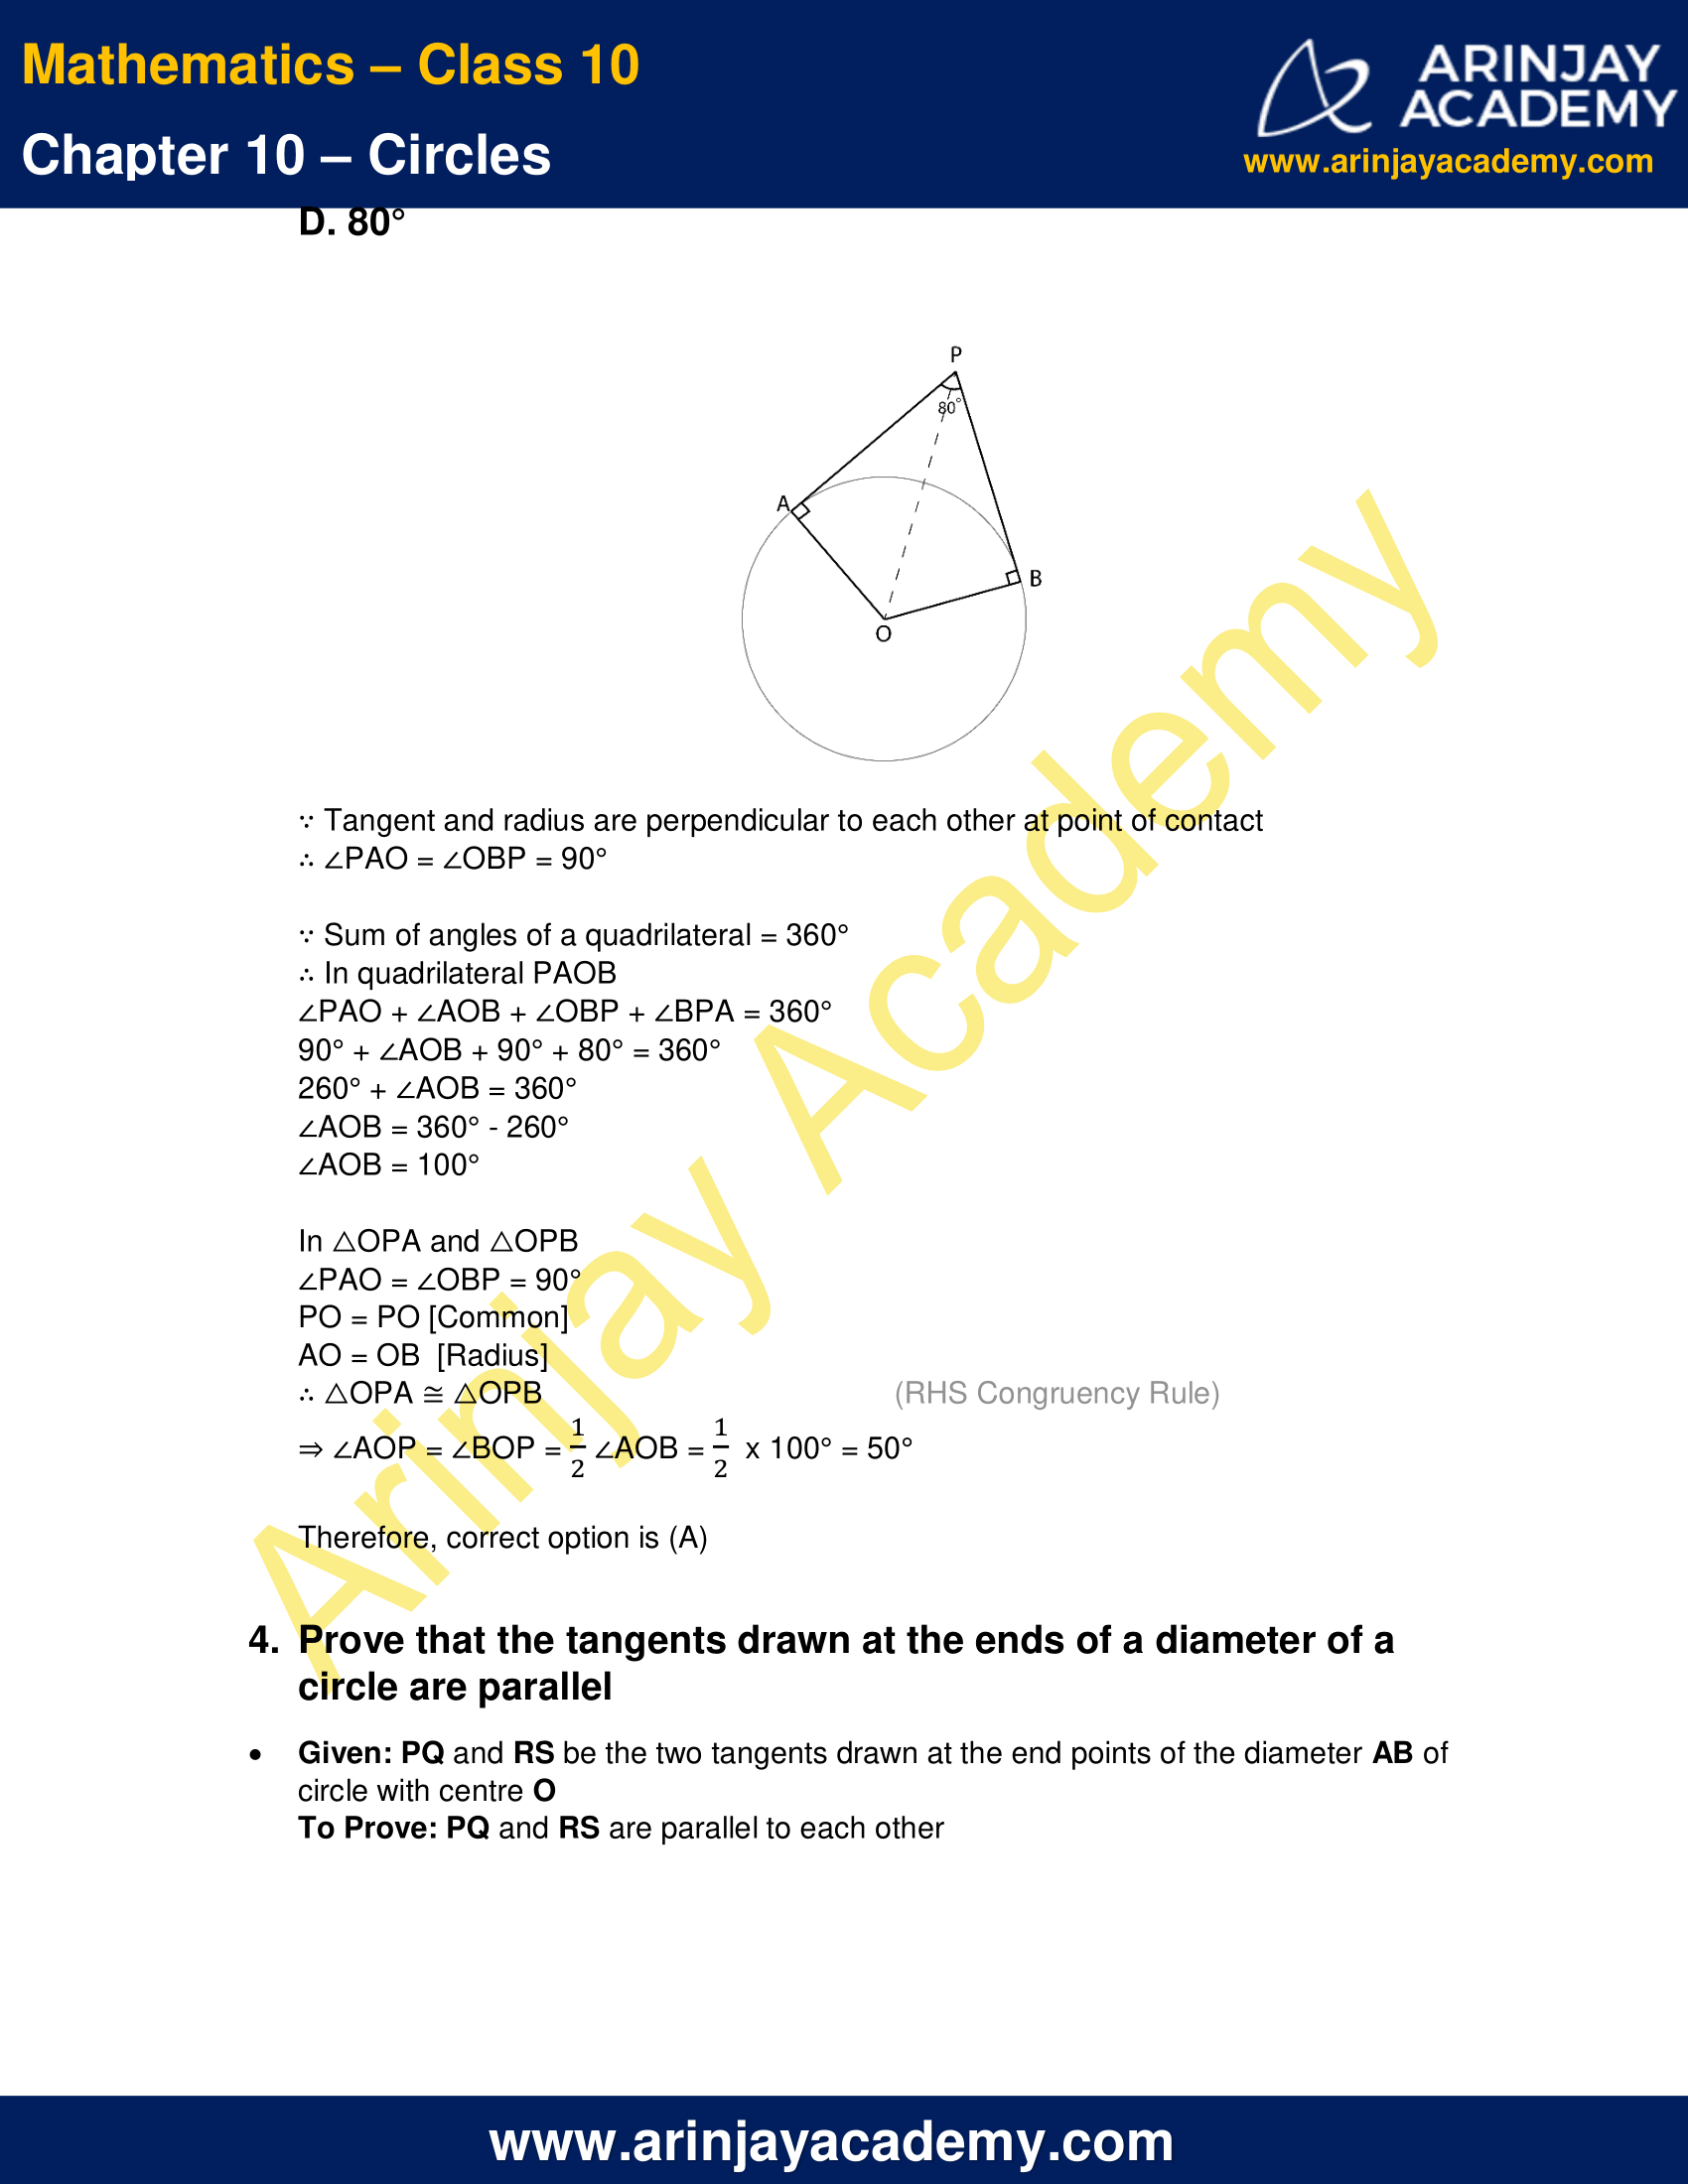 NCERT Solutions For Class 10 Maths Chapter 10 Exercise 10.2 image 3